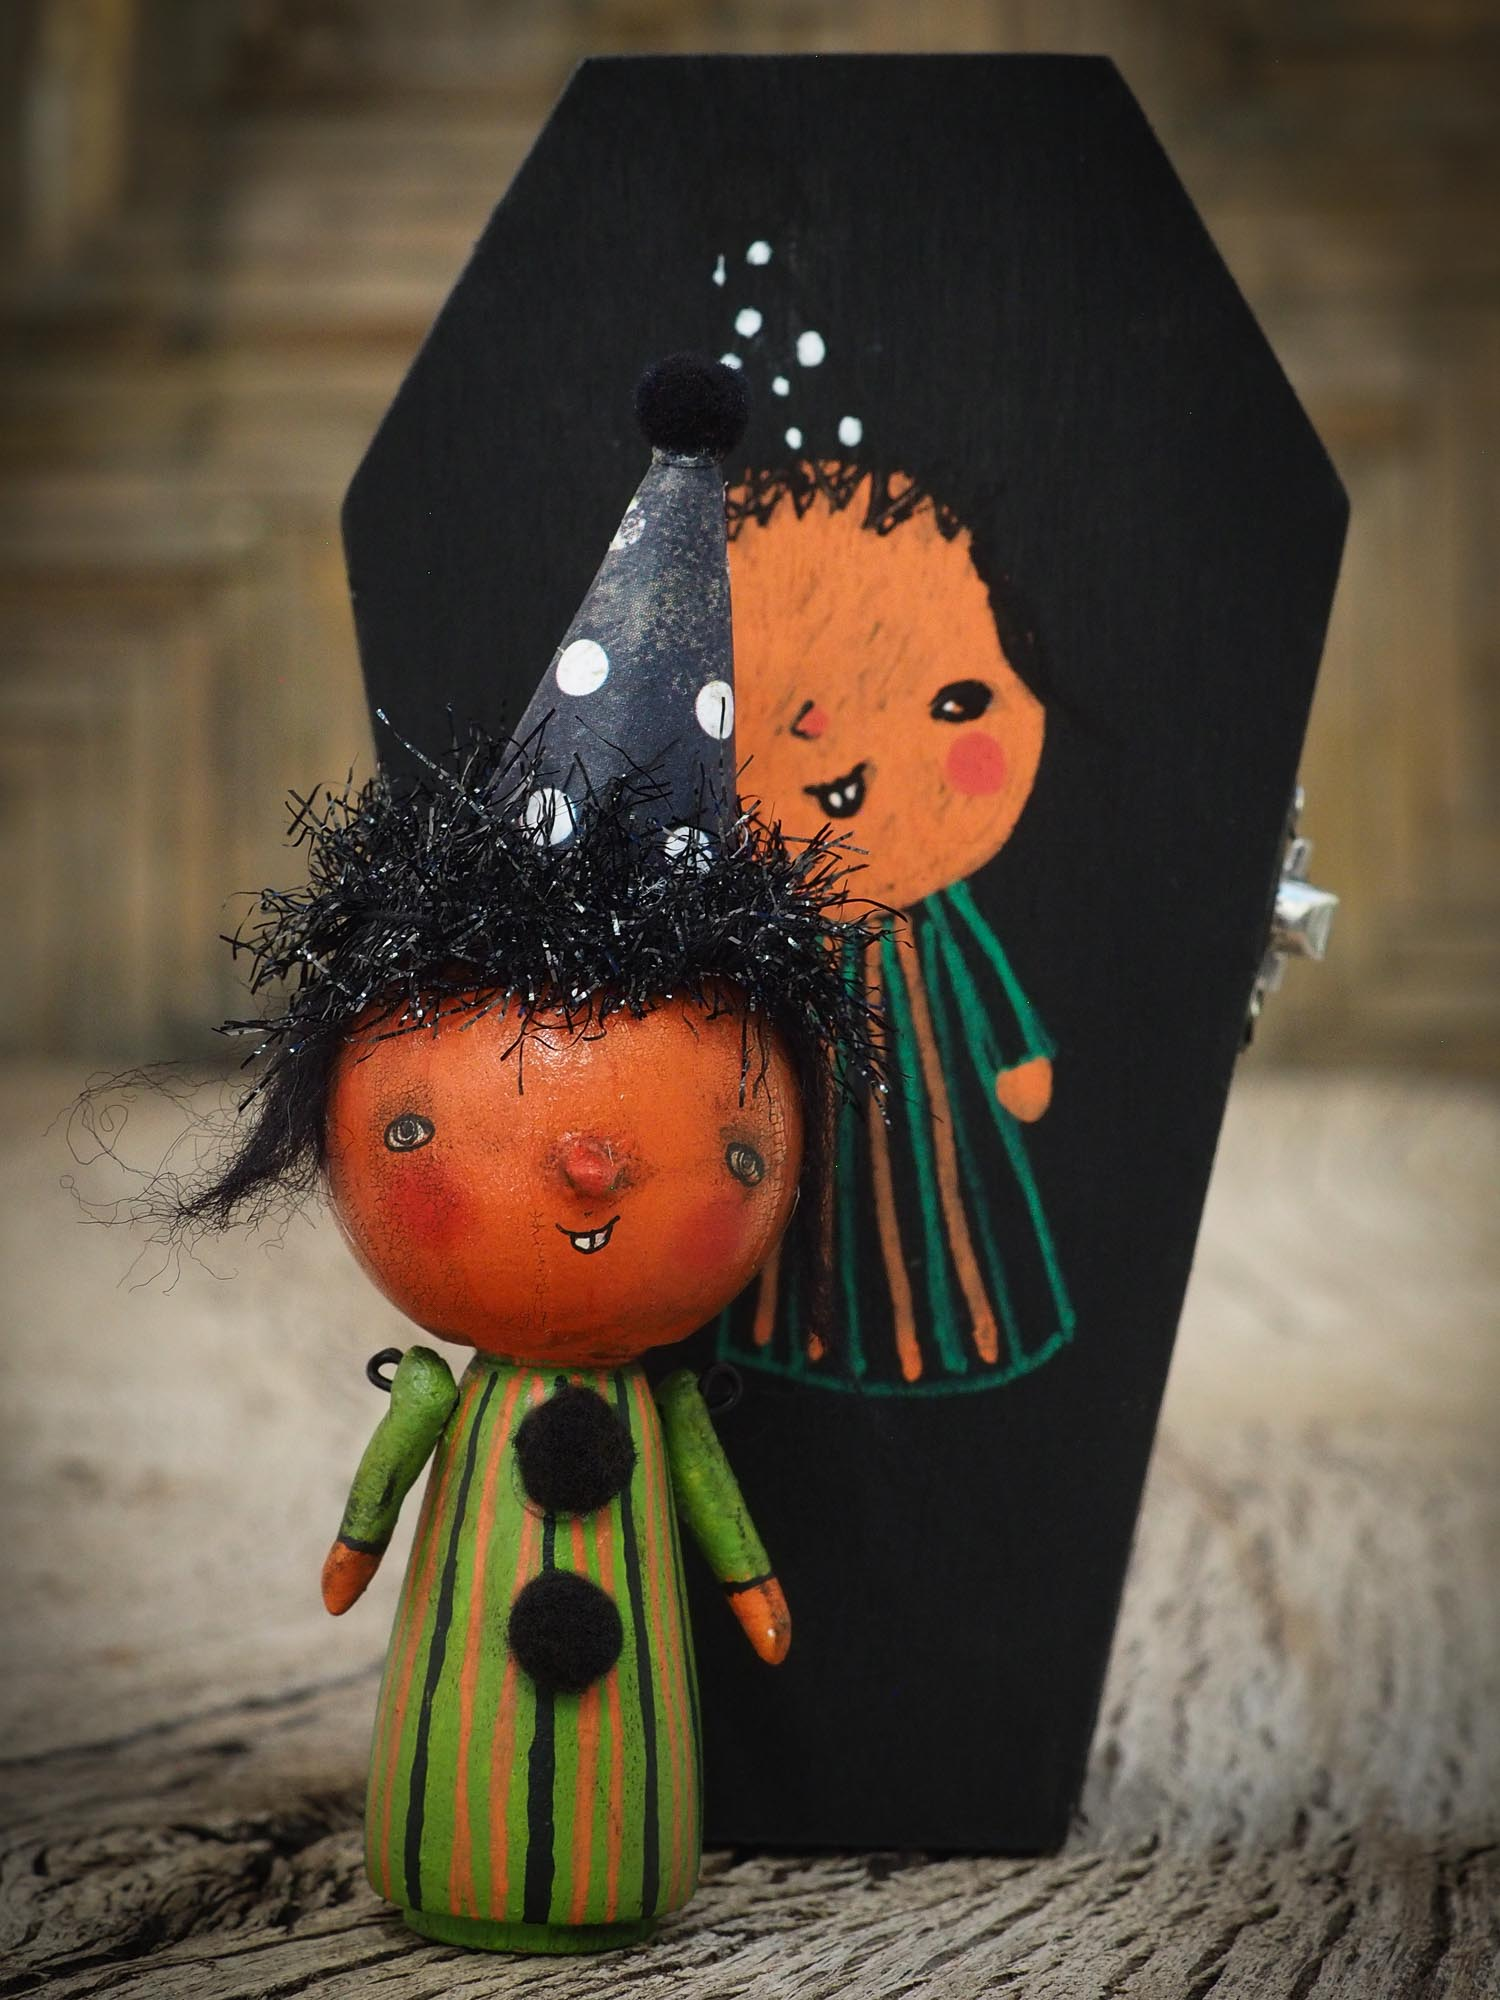 Folk art whimsical halloween witch mini kokeshi wooden style art dolls, designed and hand painted by non other that Danita Art, with painted body and wizard and witch clothes, adorable hand sculpted noses and a beautiful face with a whimsical smile. They come with a coffin shaped display and storage case for home decor